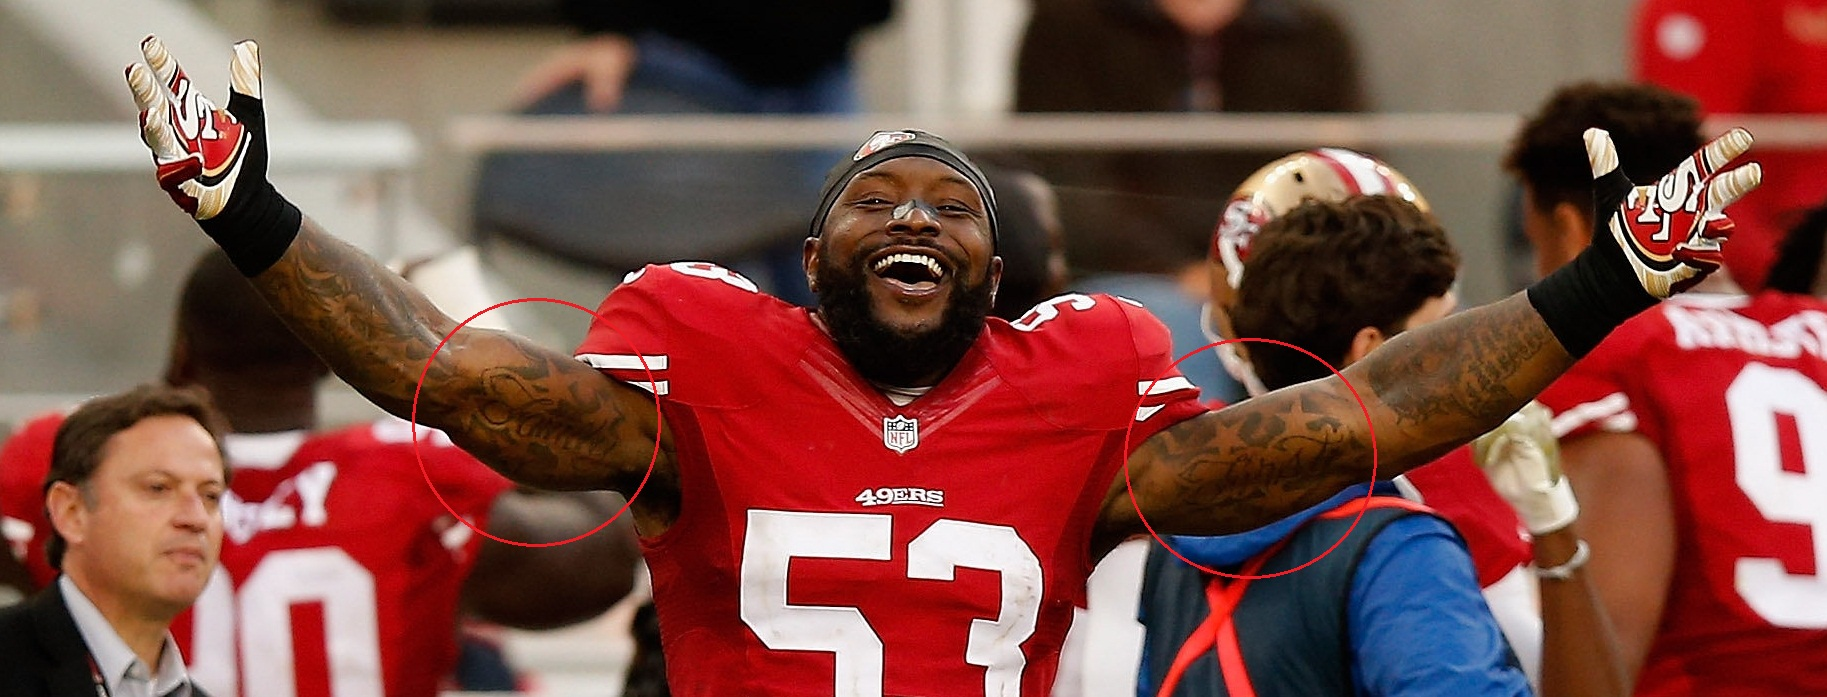 Navarro Bowman Family First Tattoo